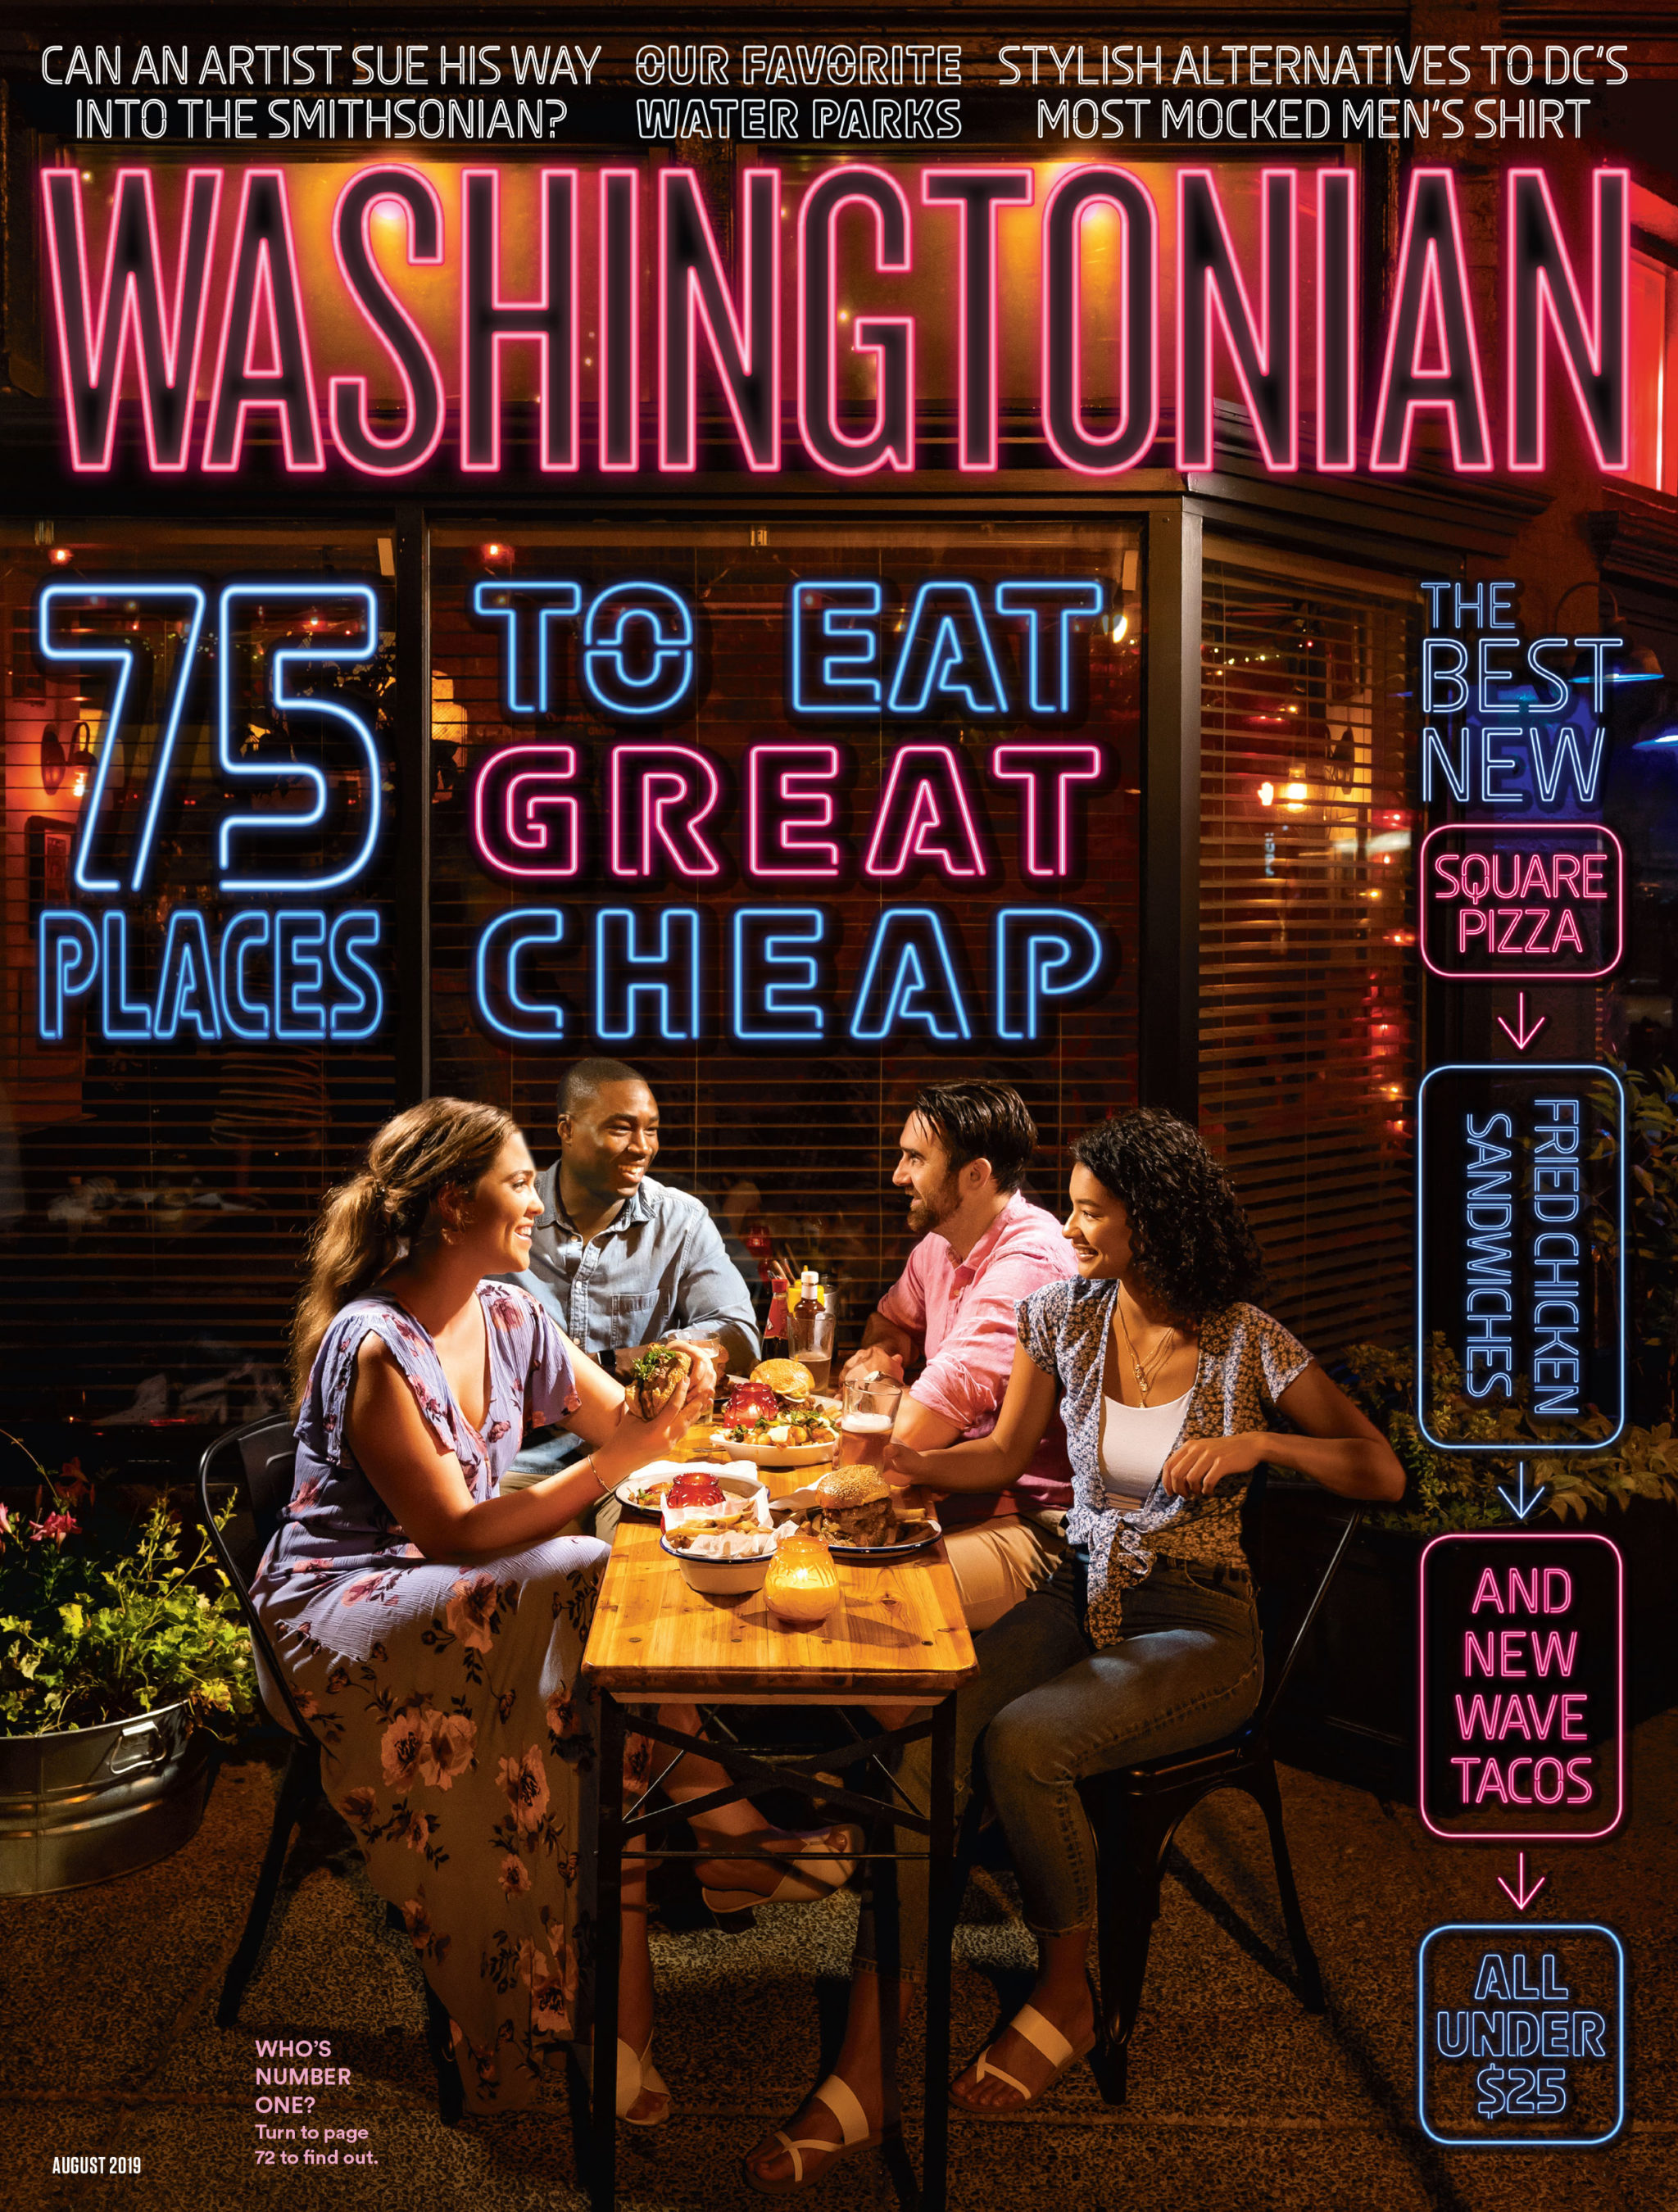 August 2019: 75 Places to Eat Great Cheap